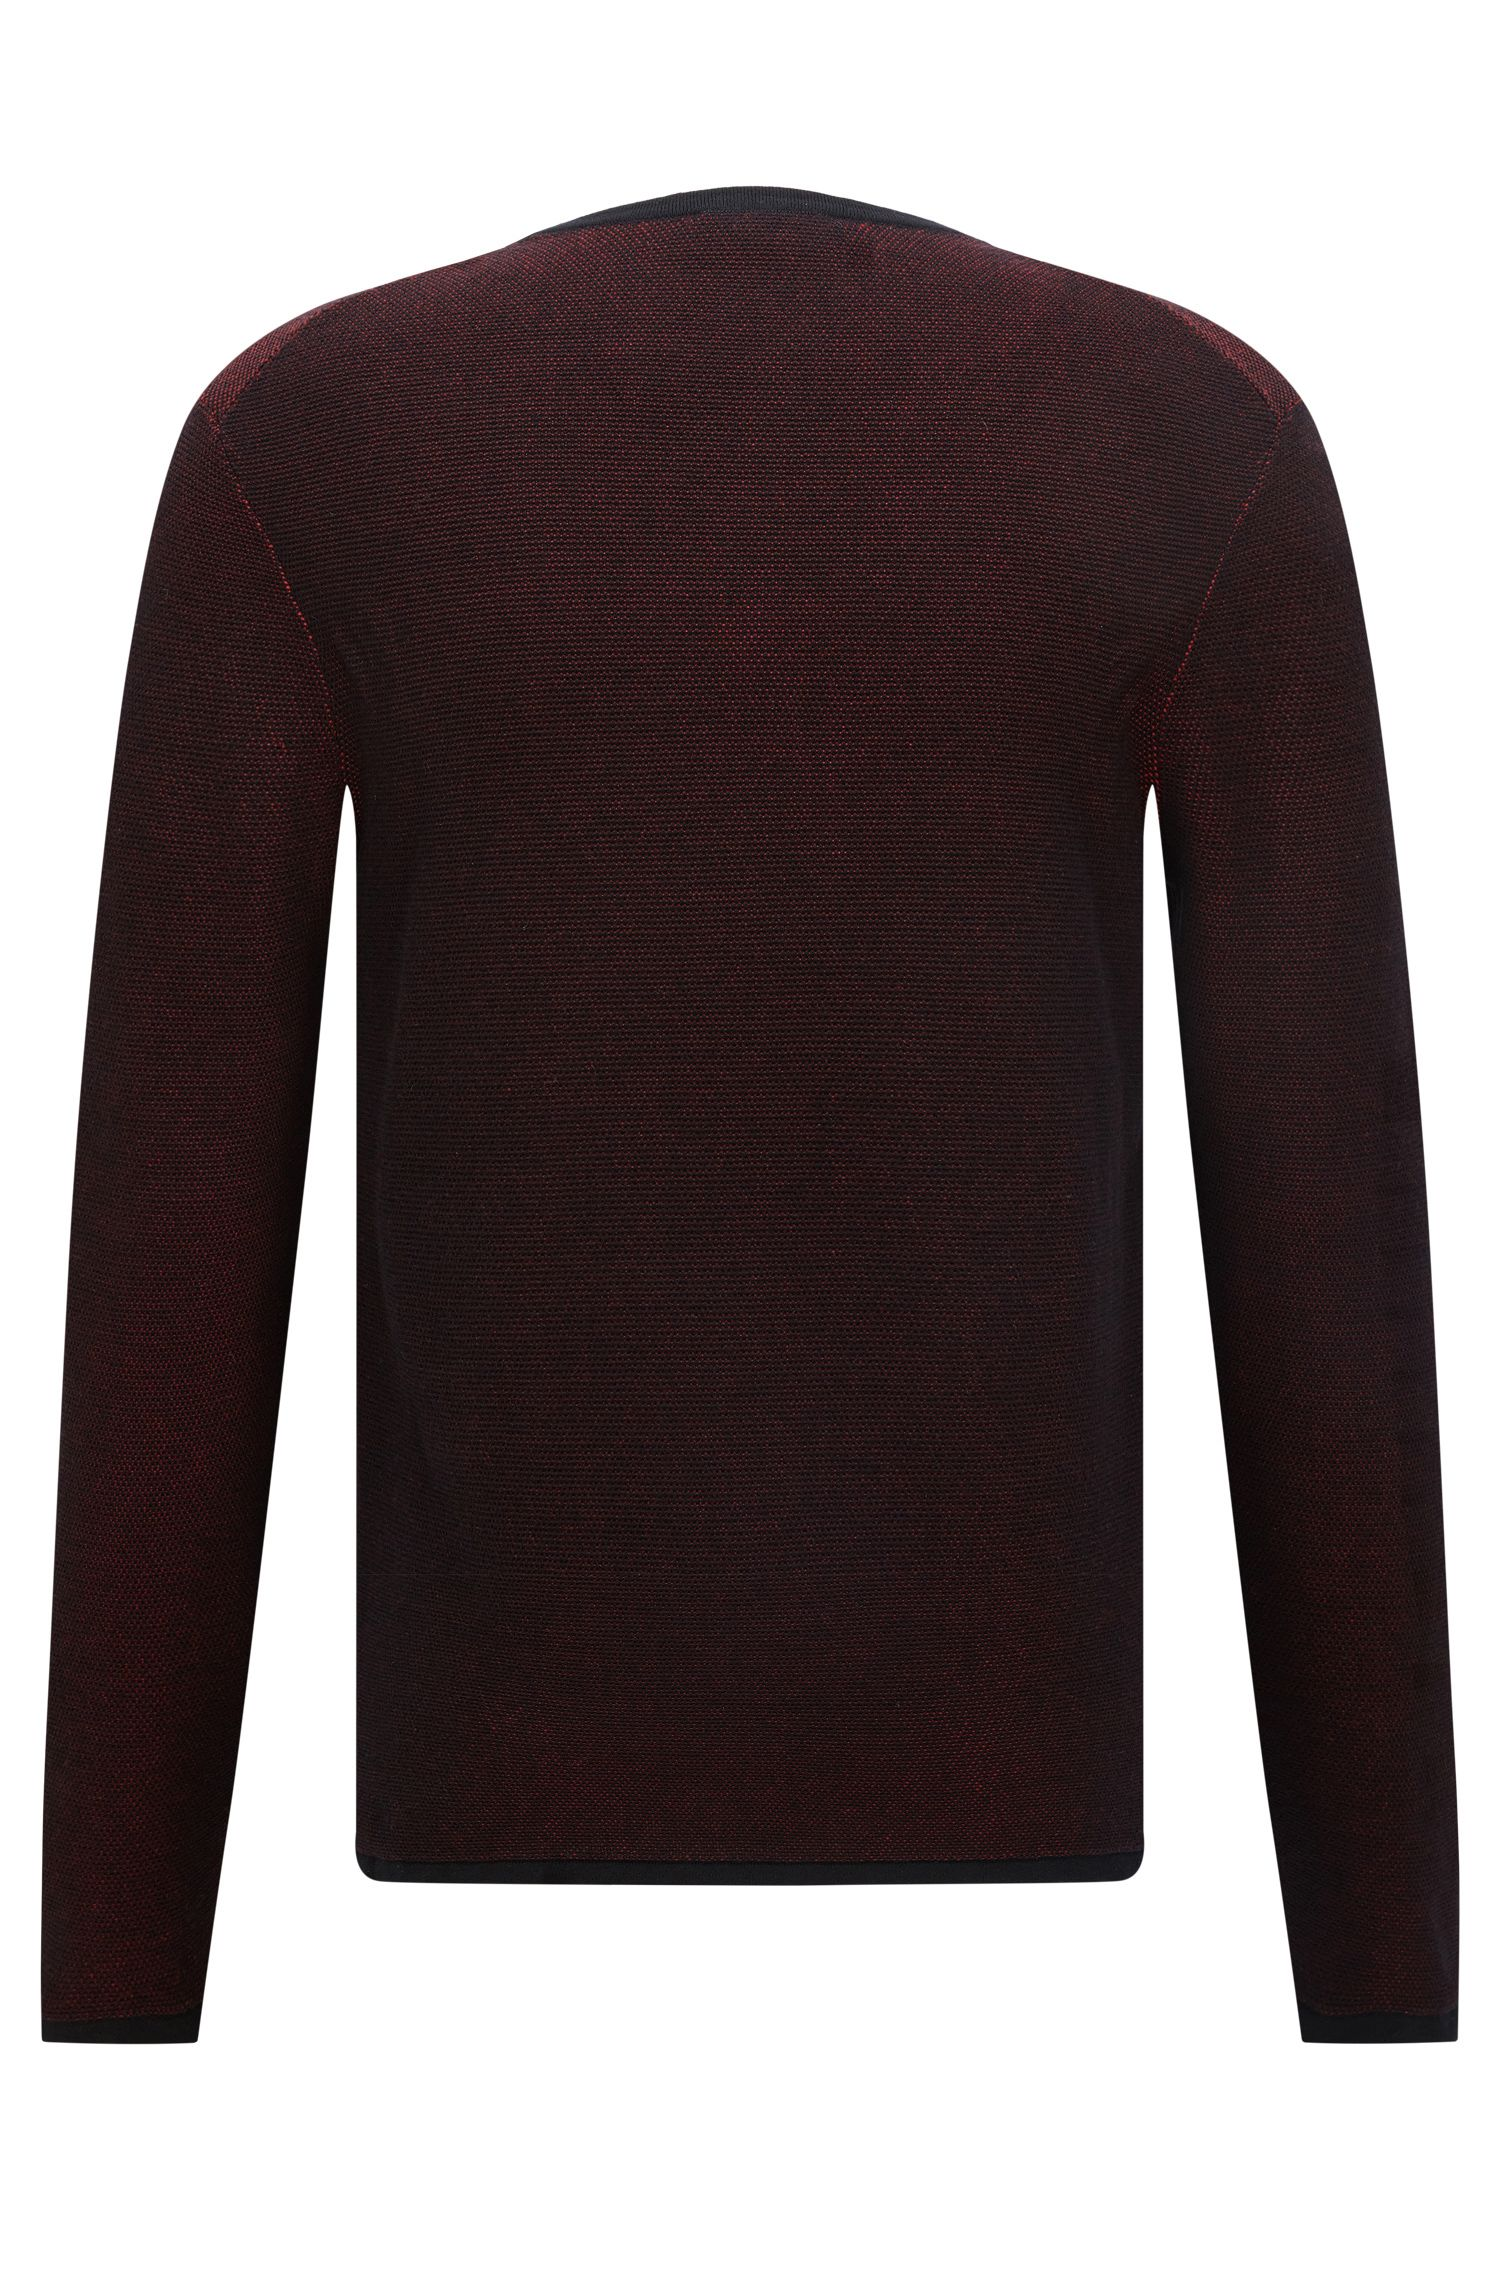 'Rime' | Relaxed Fit, Cotton Blend Sweater, Dark Red